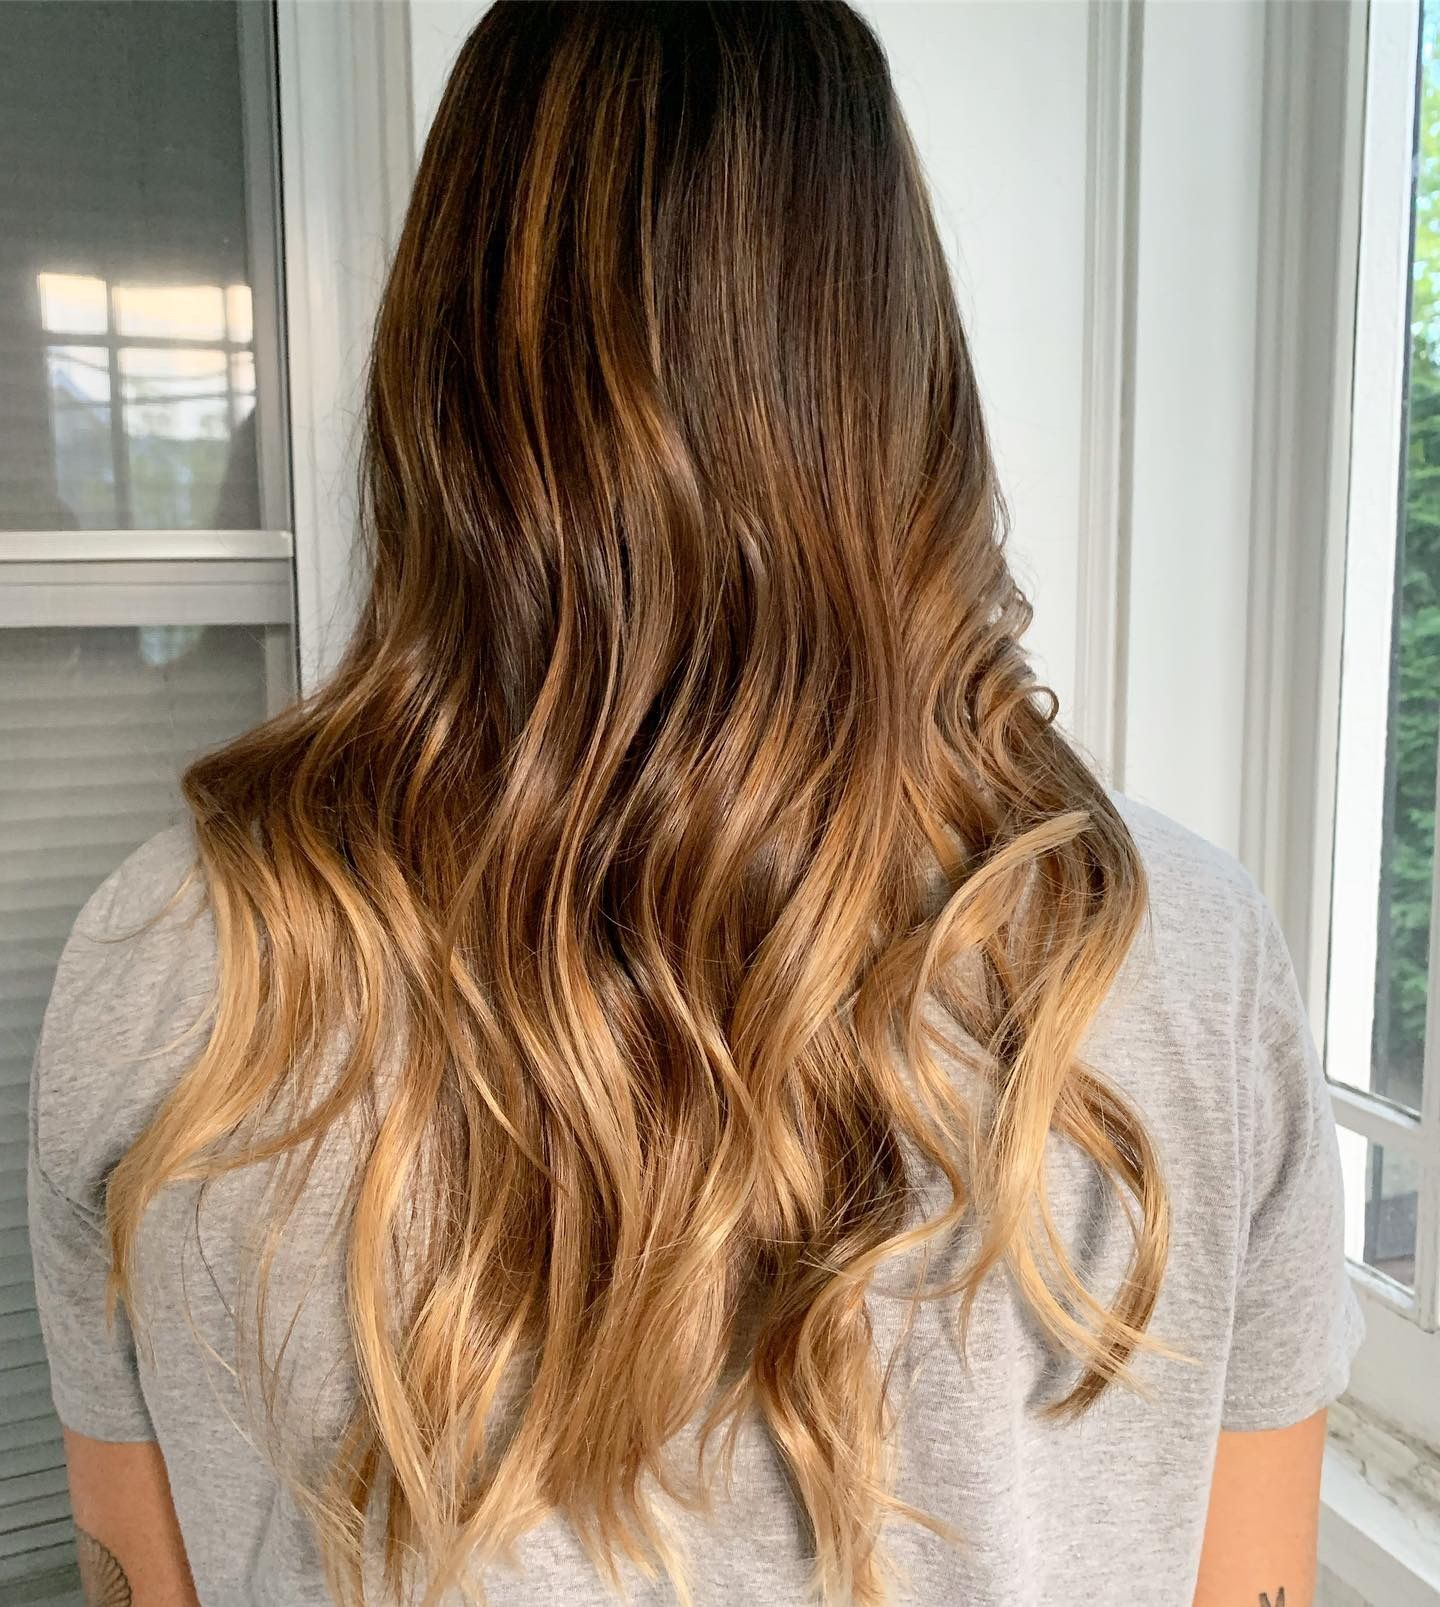 Chrissy Tiegan Inspired Balayage Lifted With Schwarzkopf Blondme Lightener Delicious Caramel Warm Tones Created Long Hair Styles Hair Creations Wella Color